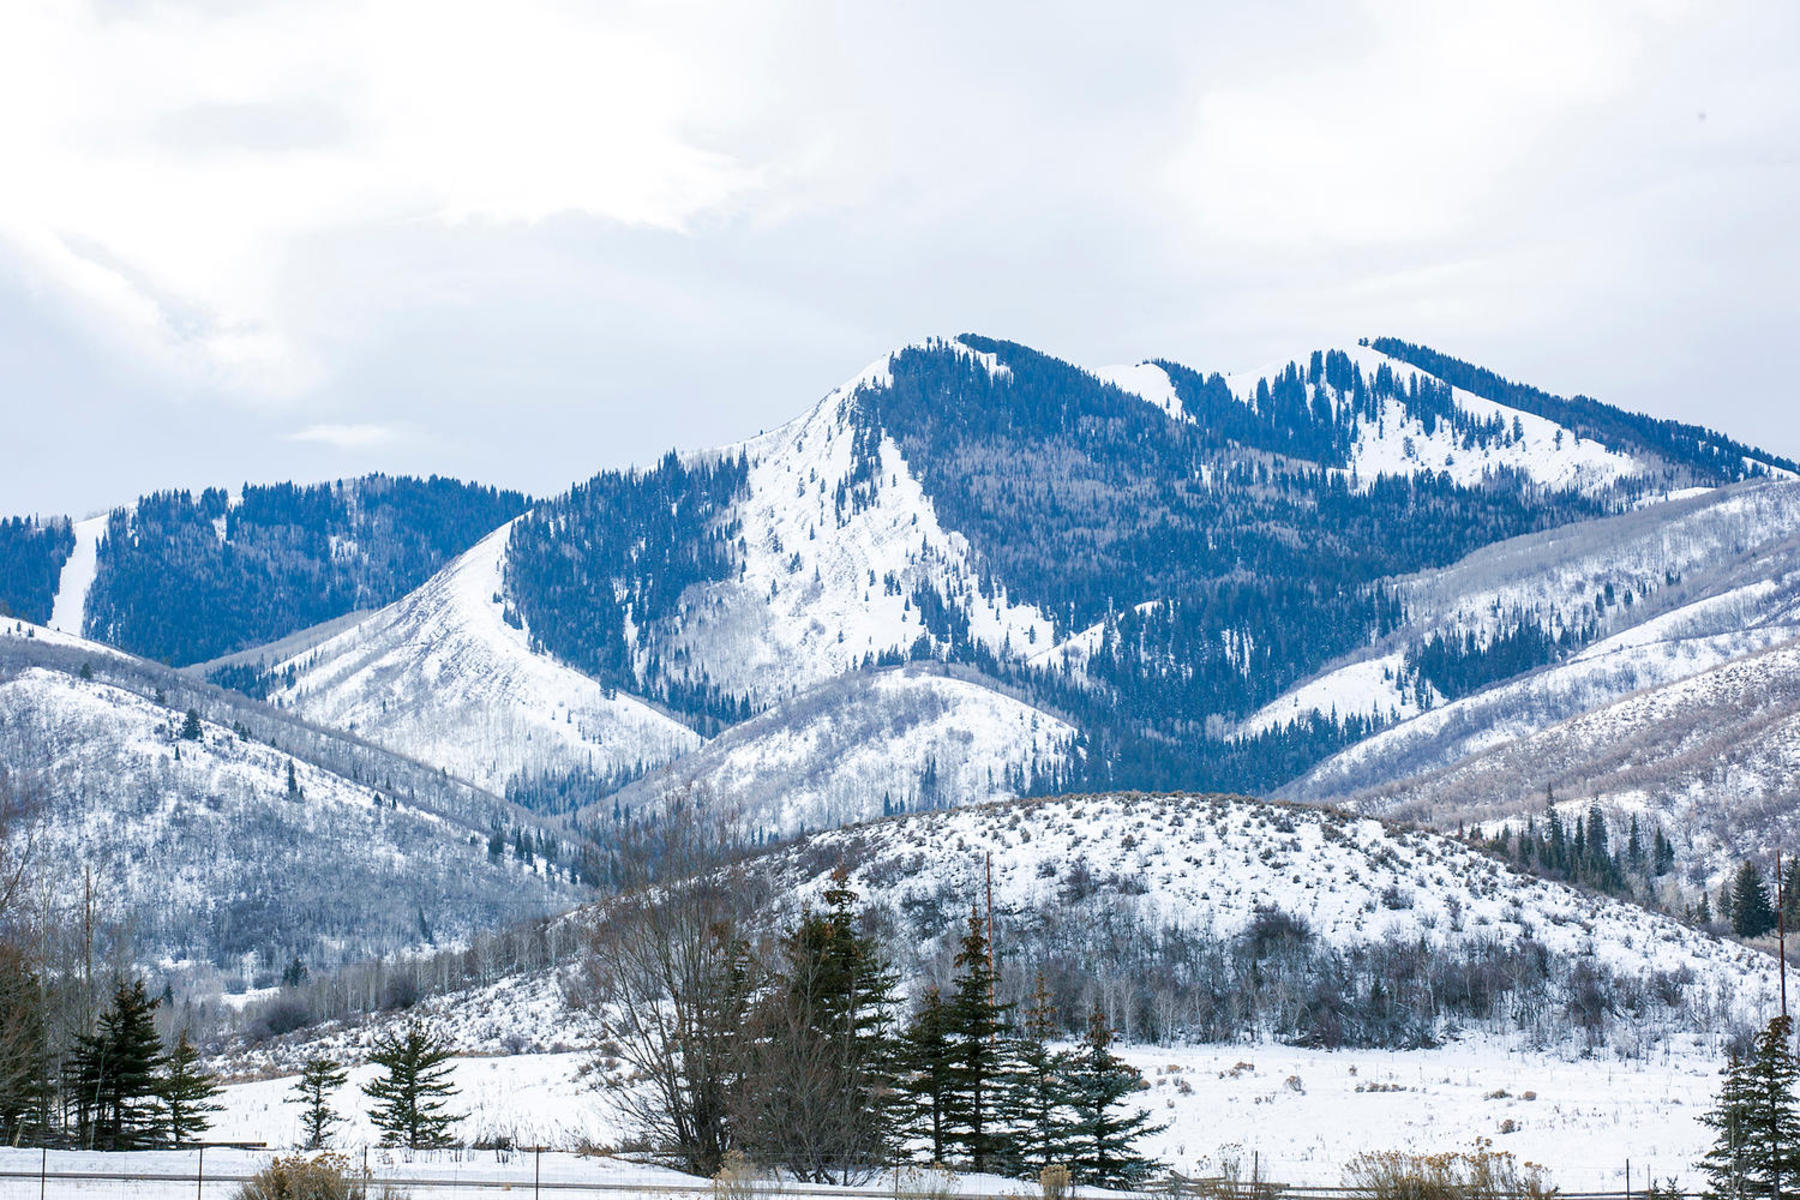 Land for Sale at Priced Below Summit County Assessed Valuation 2200 W Rasmussen Rd Lot A-1 Park City, Utah 84098 United States